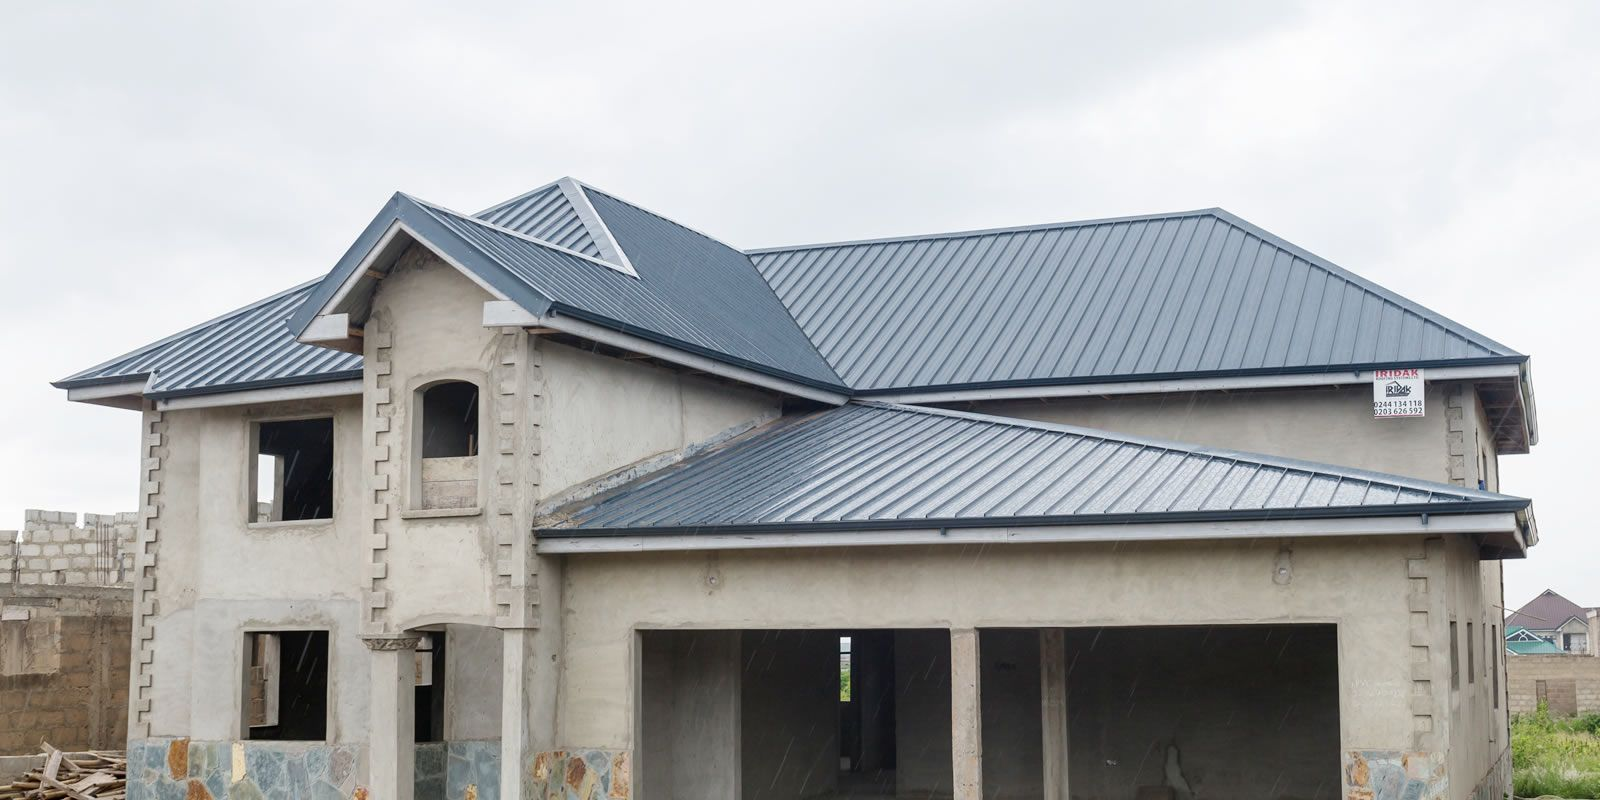 Iridak Roofing Systems Is One Of The Top Contractor Companies Offering Best Services